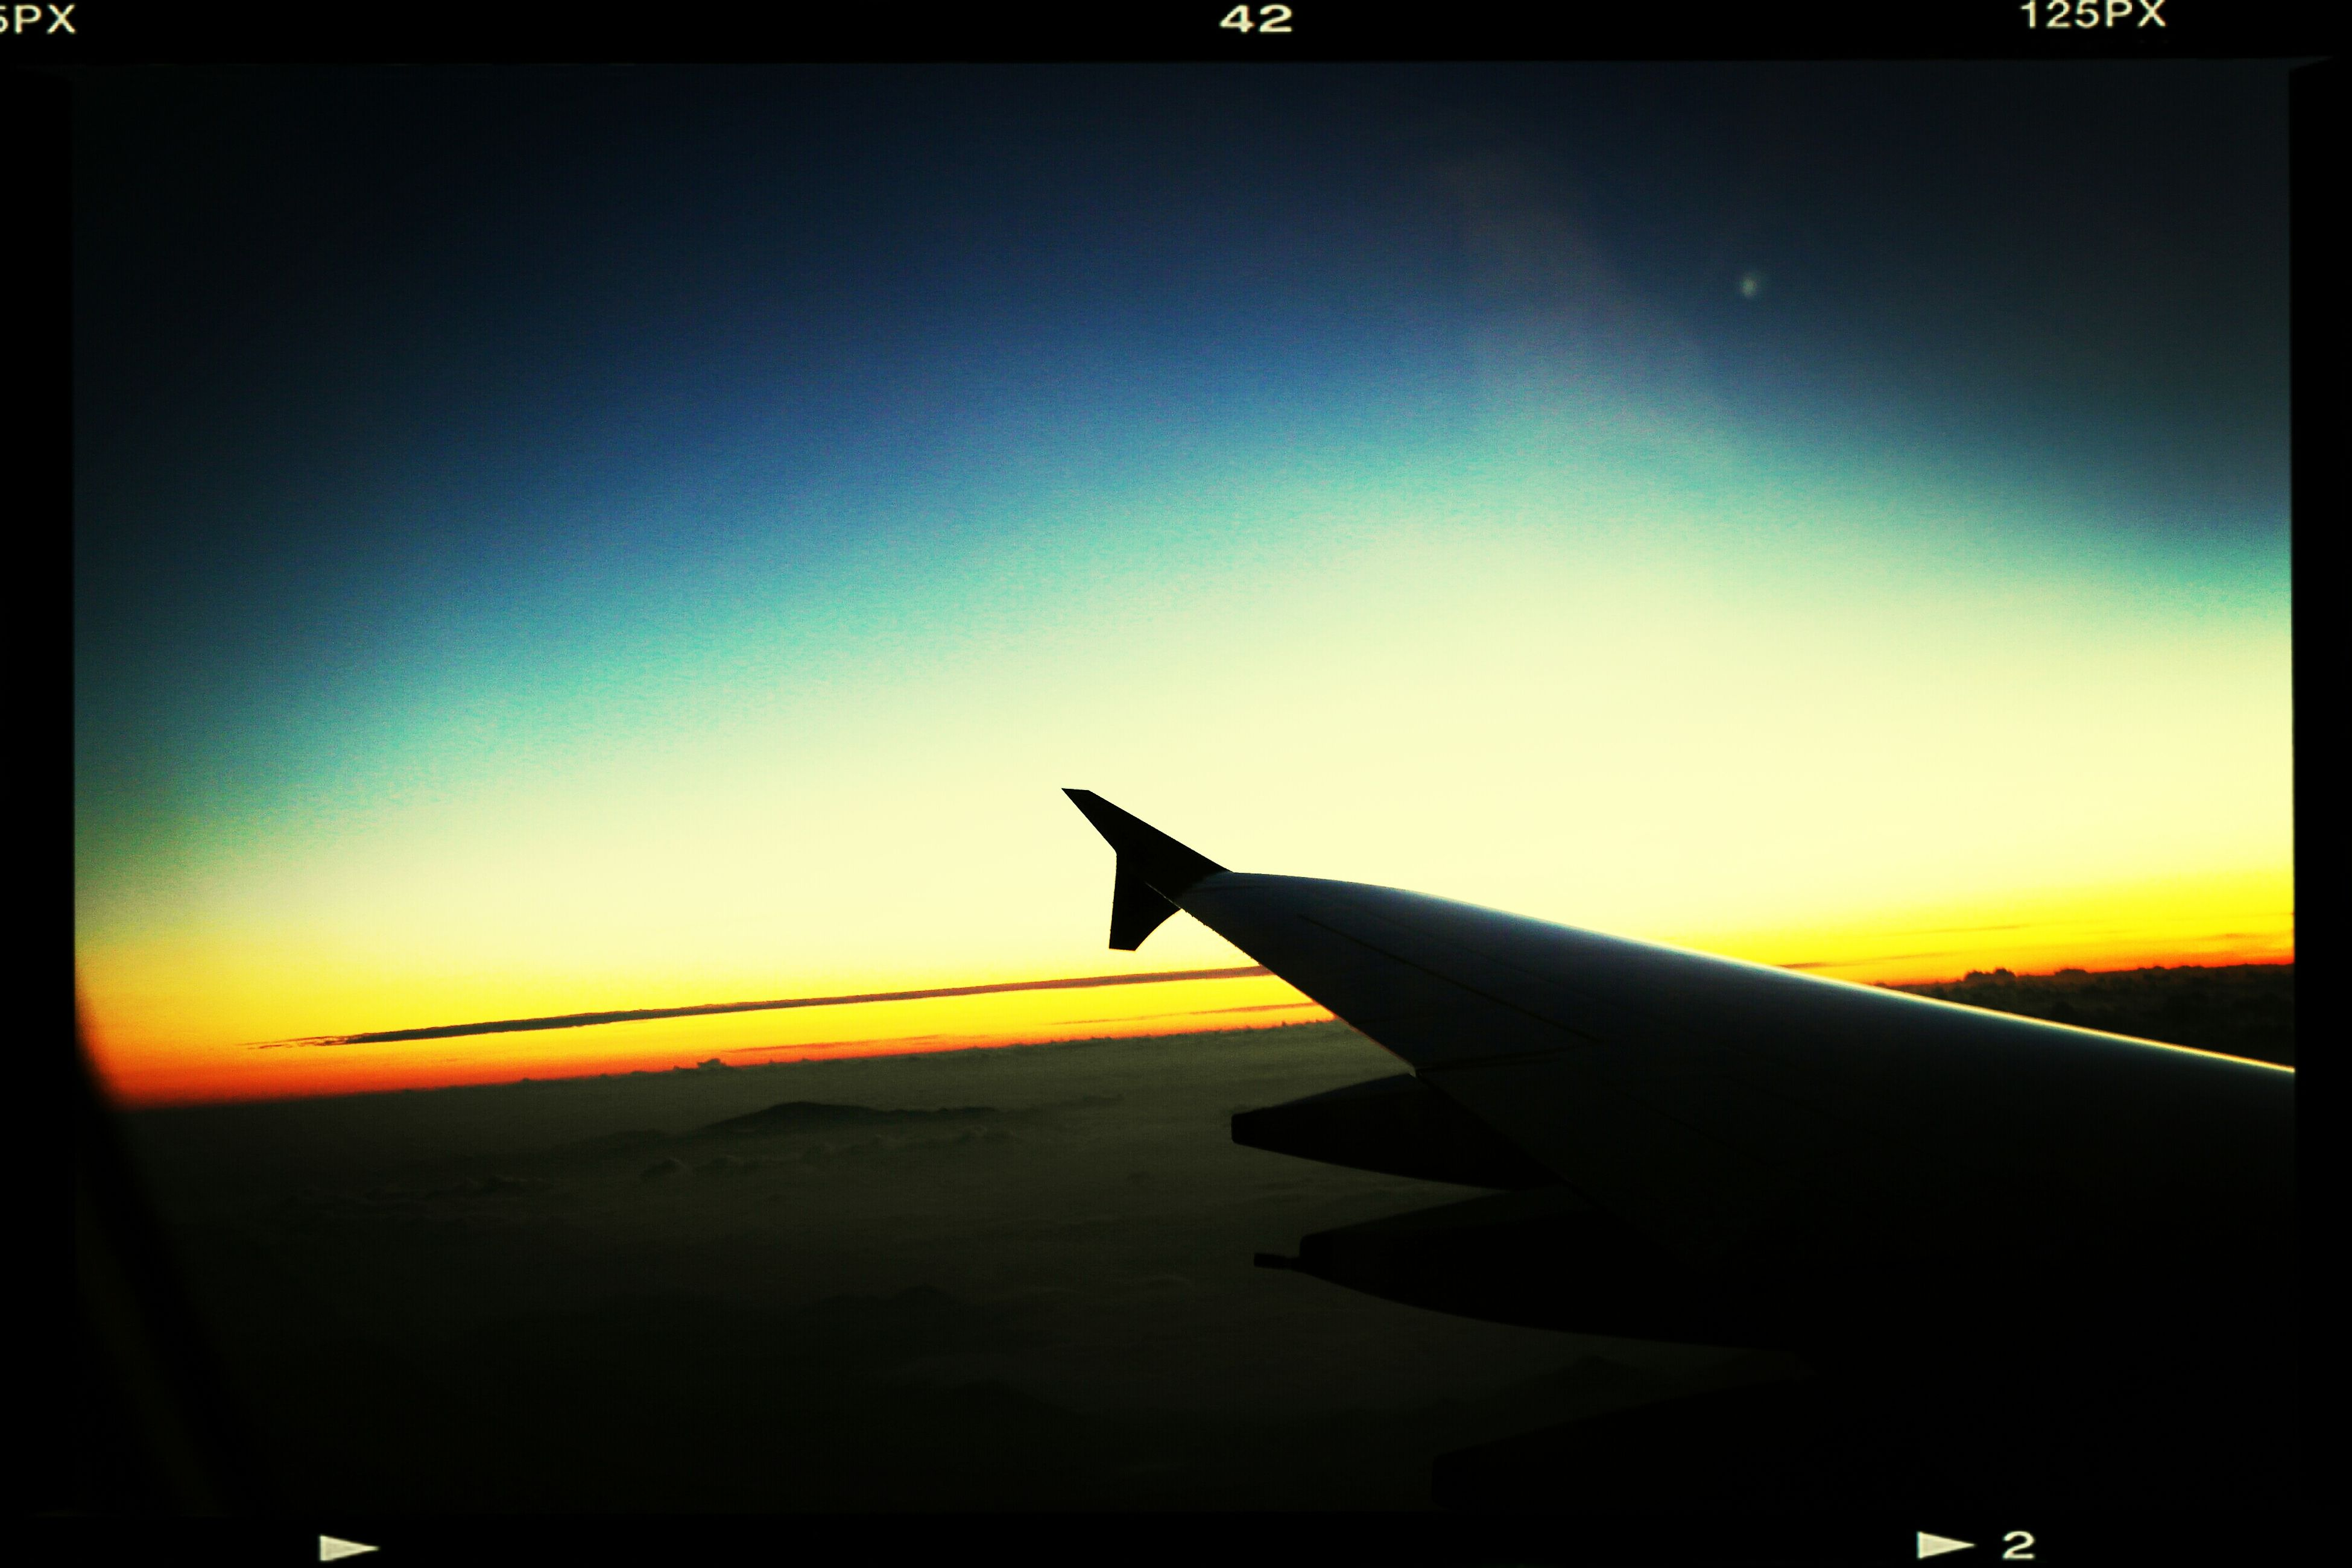 airplane, transportation, air vehicle, flying, aircraft wing, mode of transport, sunset, part of, sky, cropped, travel, mid-air, journey, transfer print, copy space, public transportation, on the move, auto post production filter, silhouette, clear sky